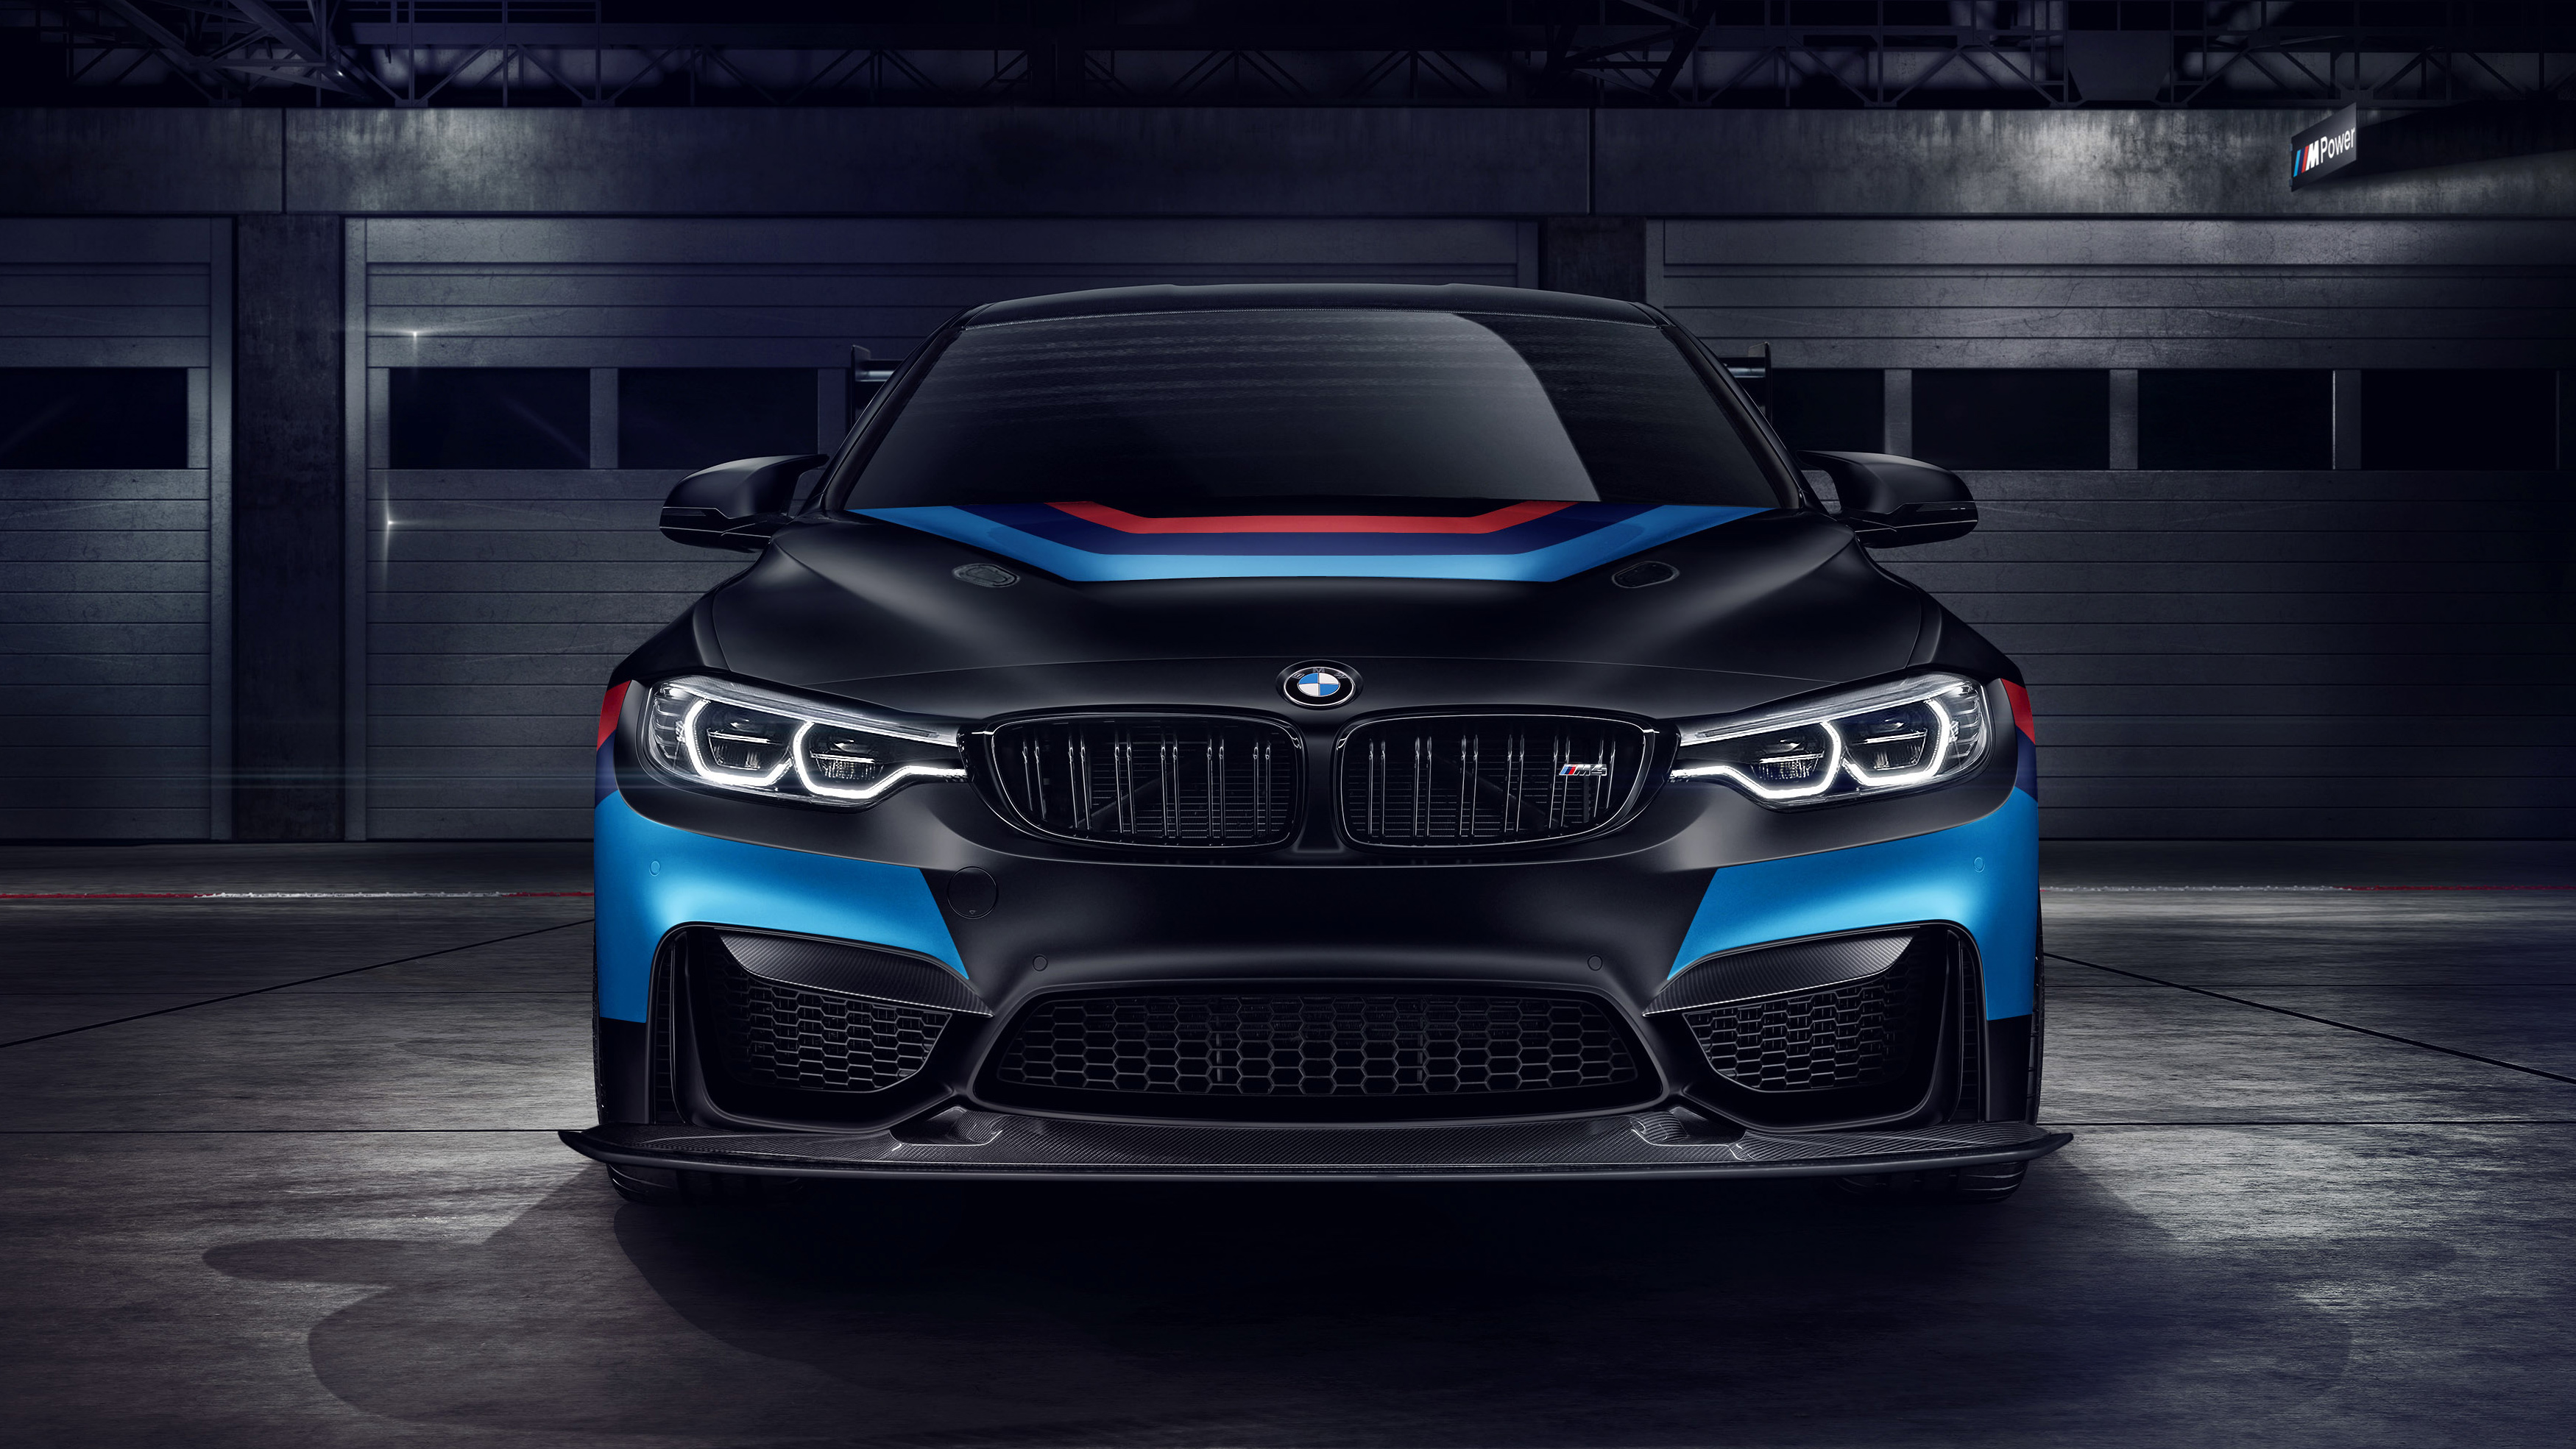 Bmw M Car Wallpaper 4k 3500x1969 Download Hd Wallpaper Wallpapertip